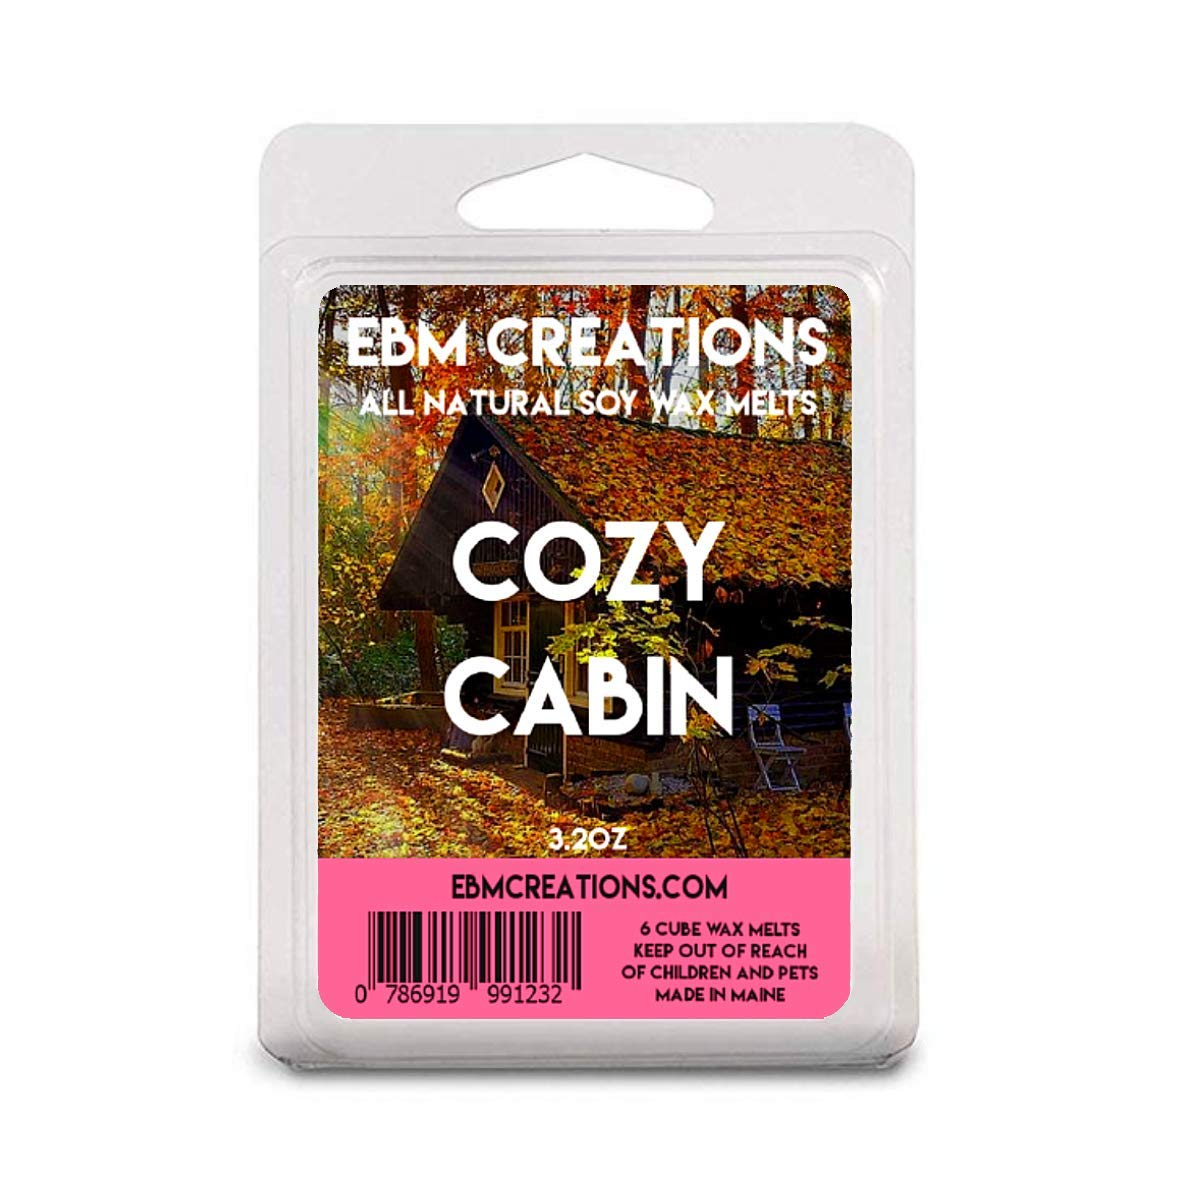 Cozy Cabin - Scented All Natural Soy Wax Melts - 6 Cube Clamshell 3.2oz Highly Scented!